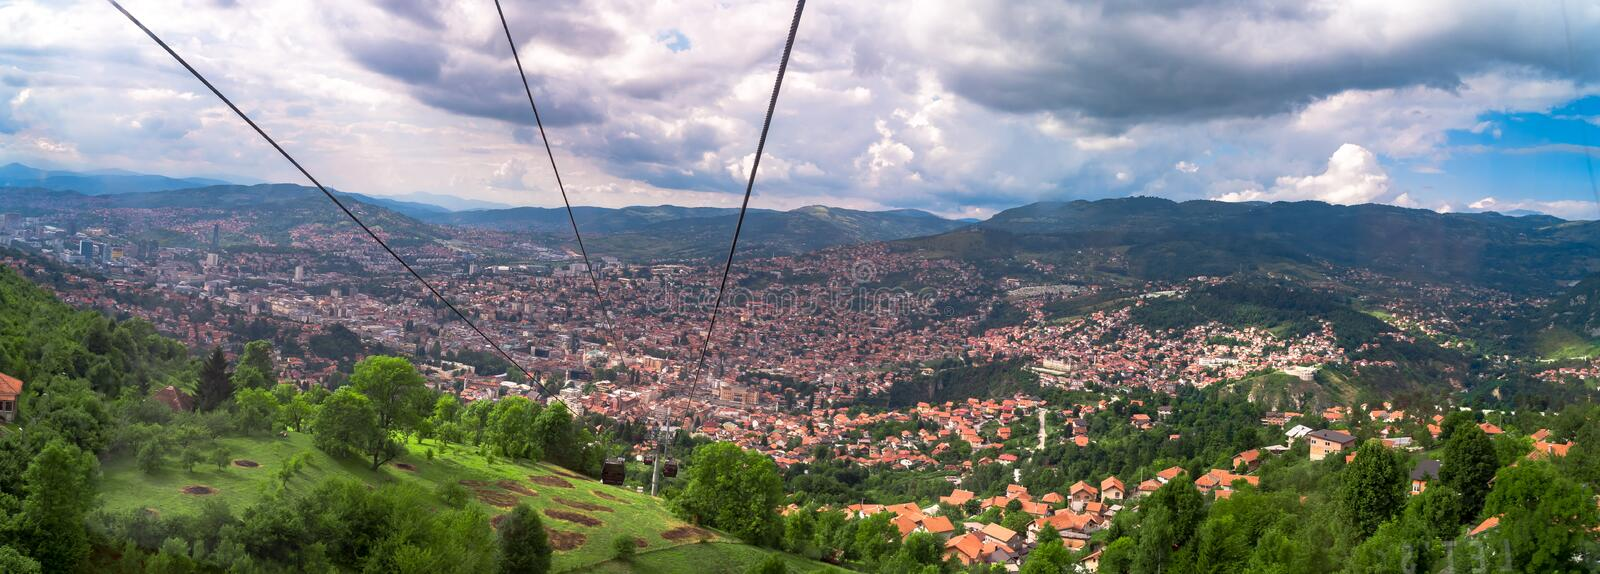 Cable Car Lift from City Center to Trebevic. Cable car lift from the center of Sarajevo to Trebevic Mountain in Bosnia and Herzegovina stock photo